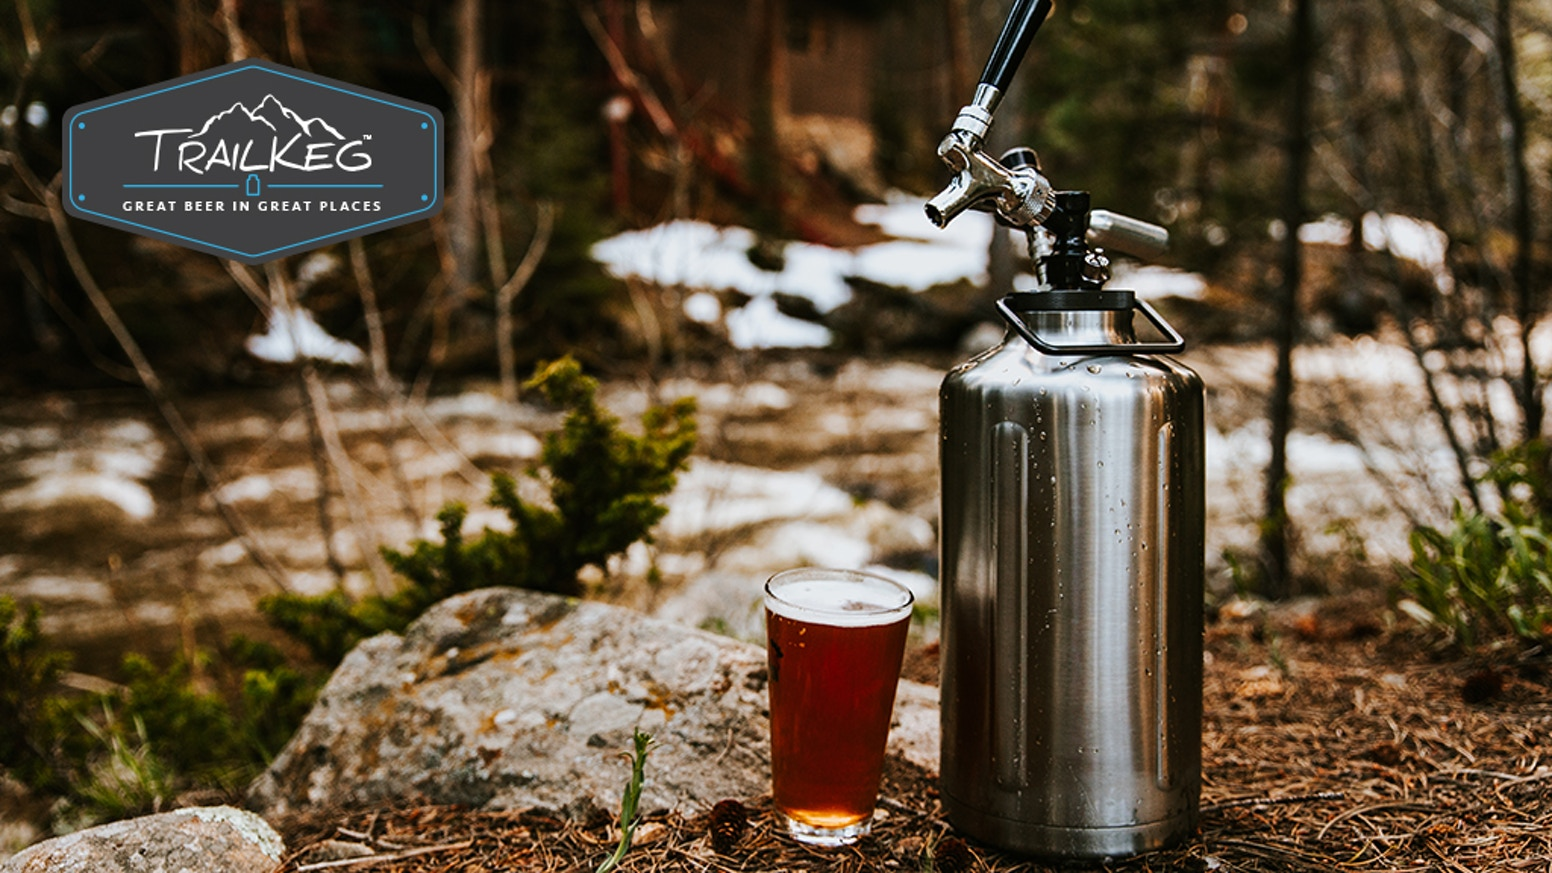 Enjoy craft beer and homebrew, cold and carbonated, anywhere! Introducing the Trailkeg gallon.